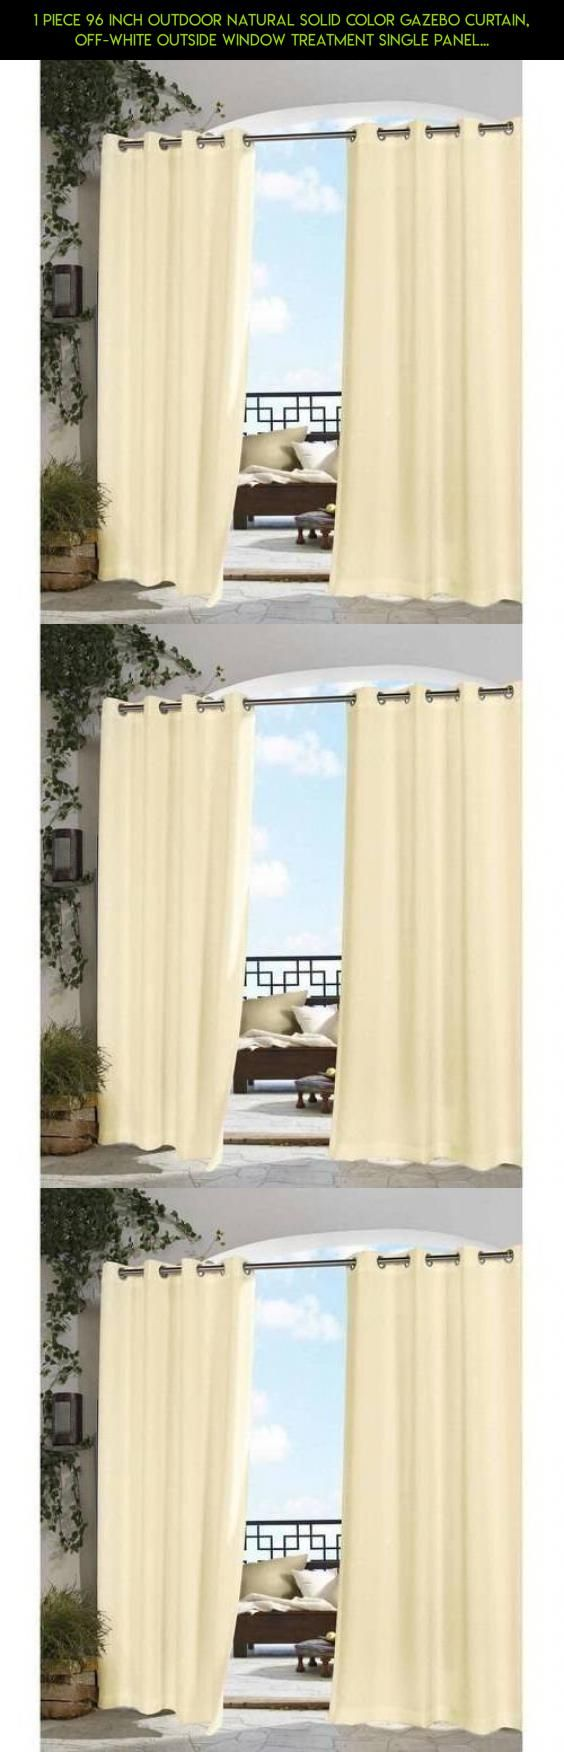 25 best ideas about Gazebo curtains on Pinterest Screened porch